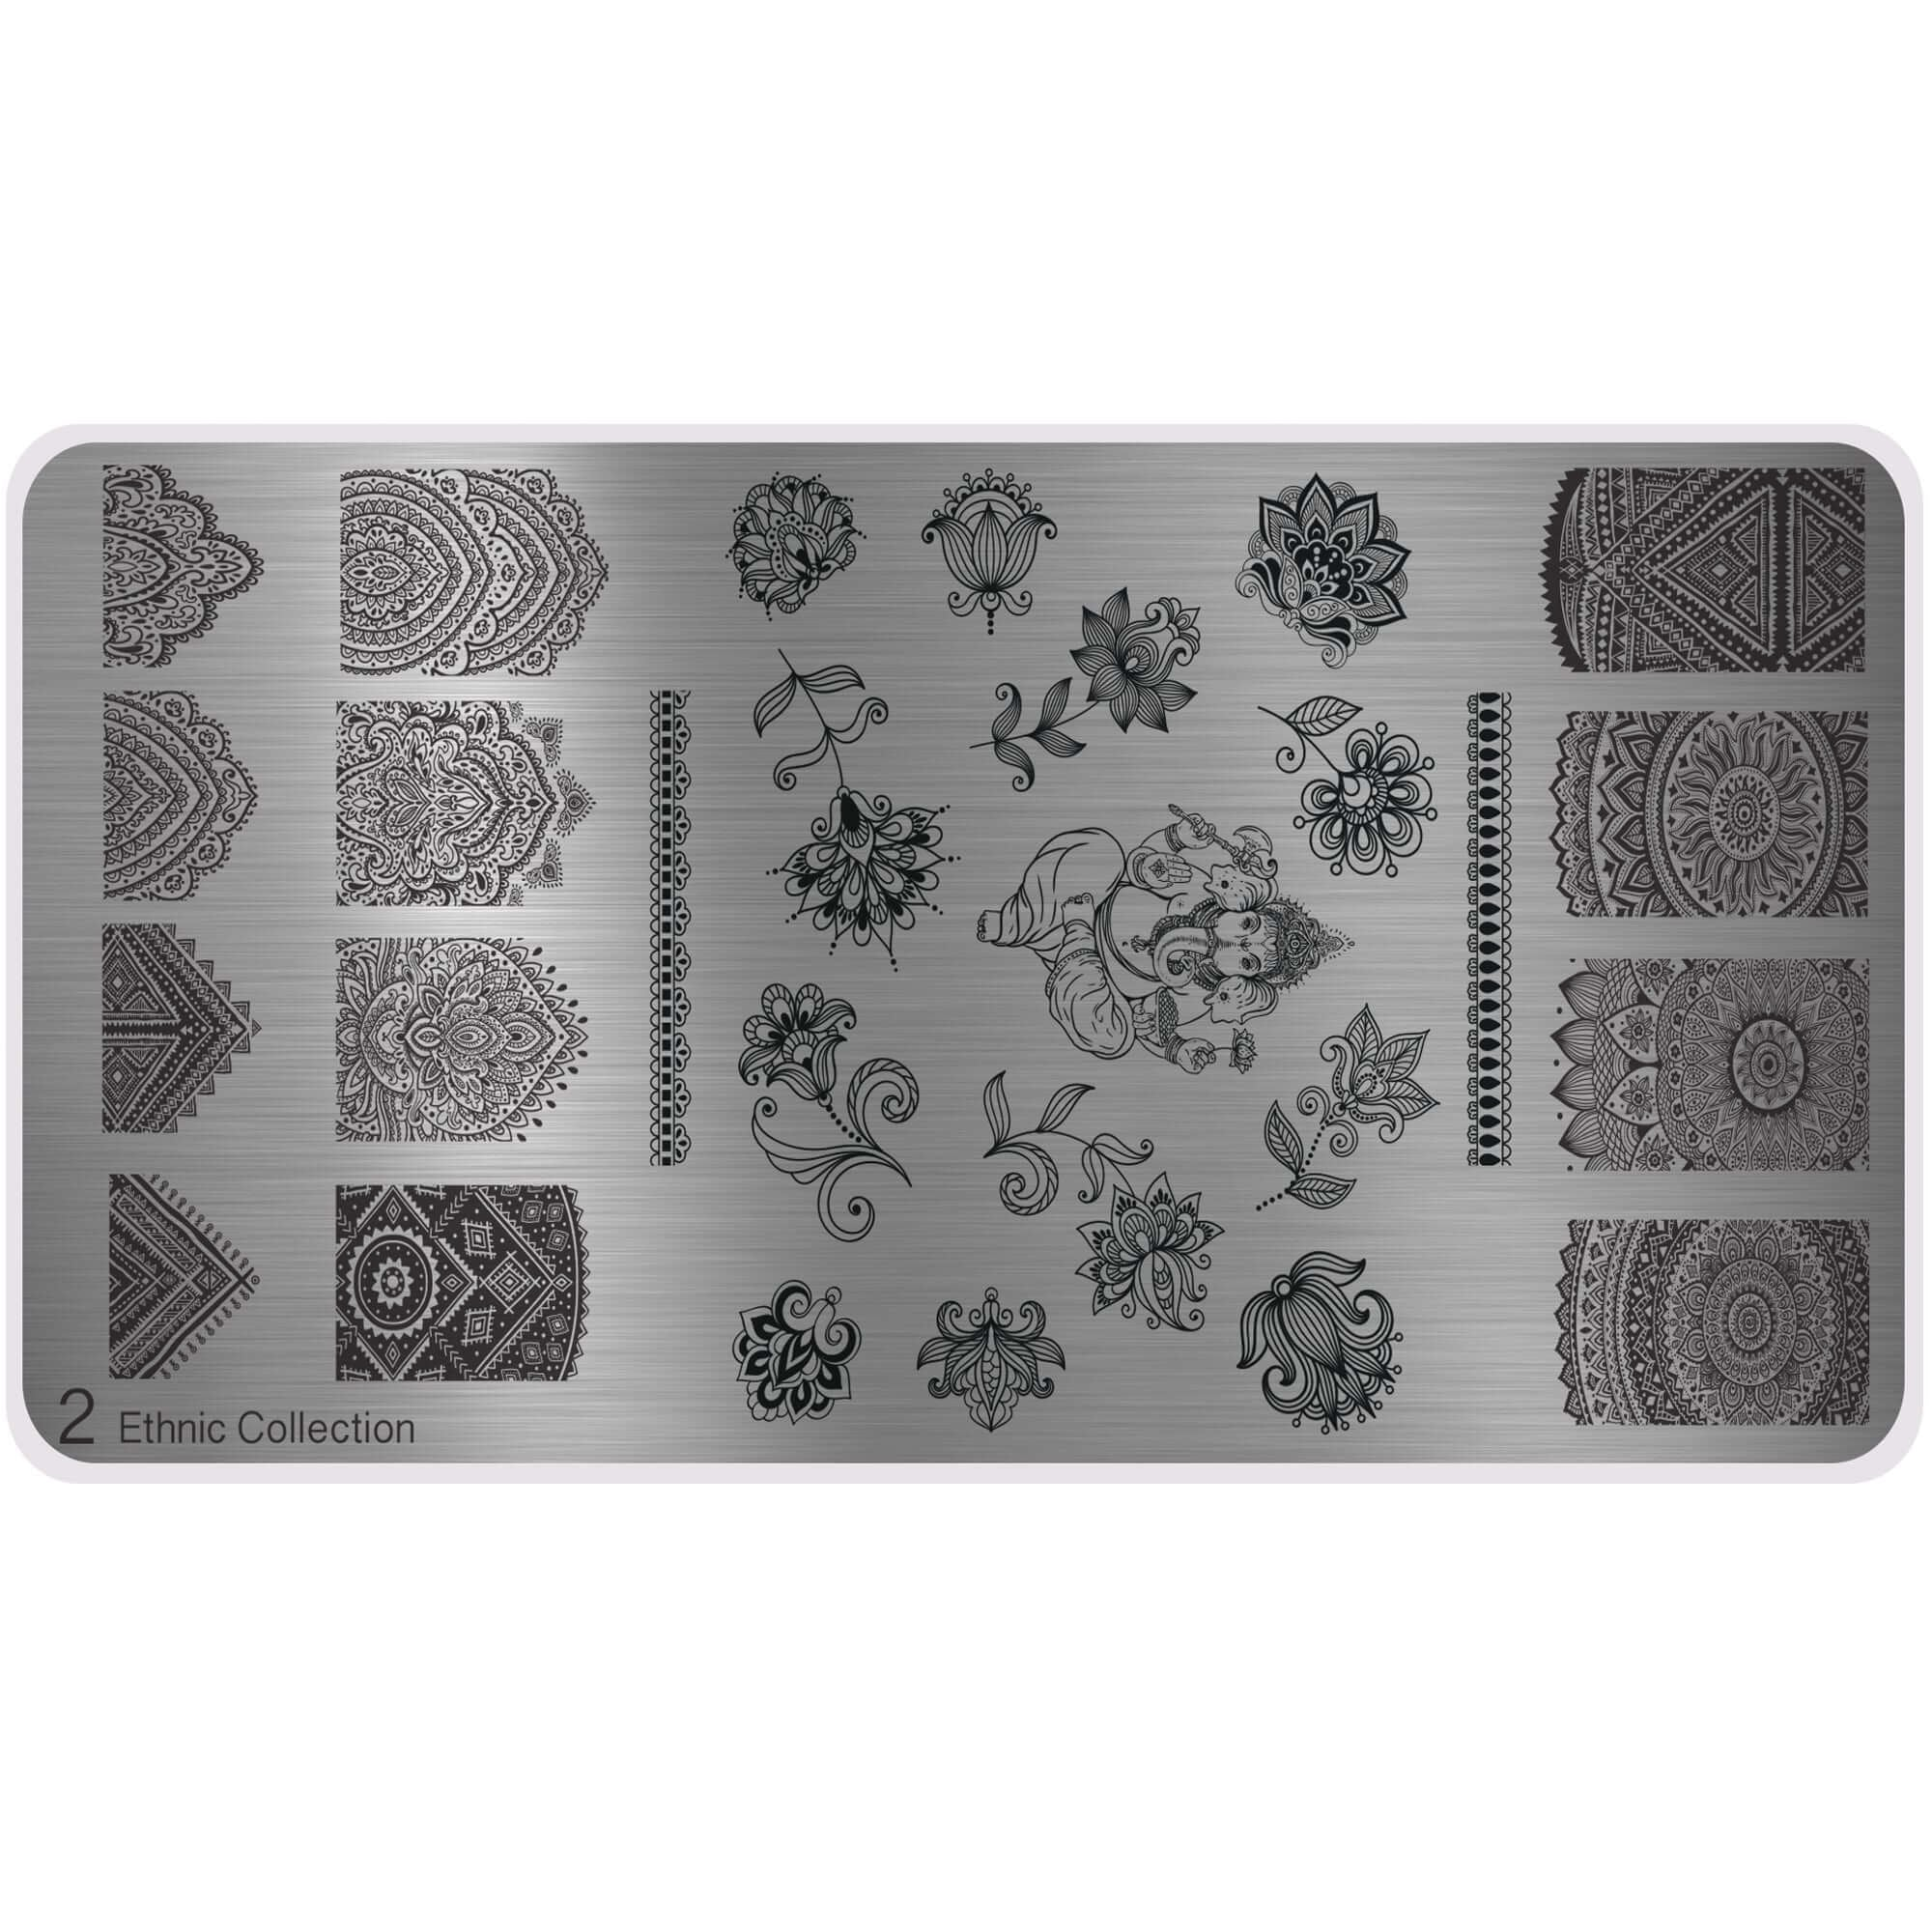 MoYou Nail Art Image Plate - XL Ethnic Style (2)